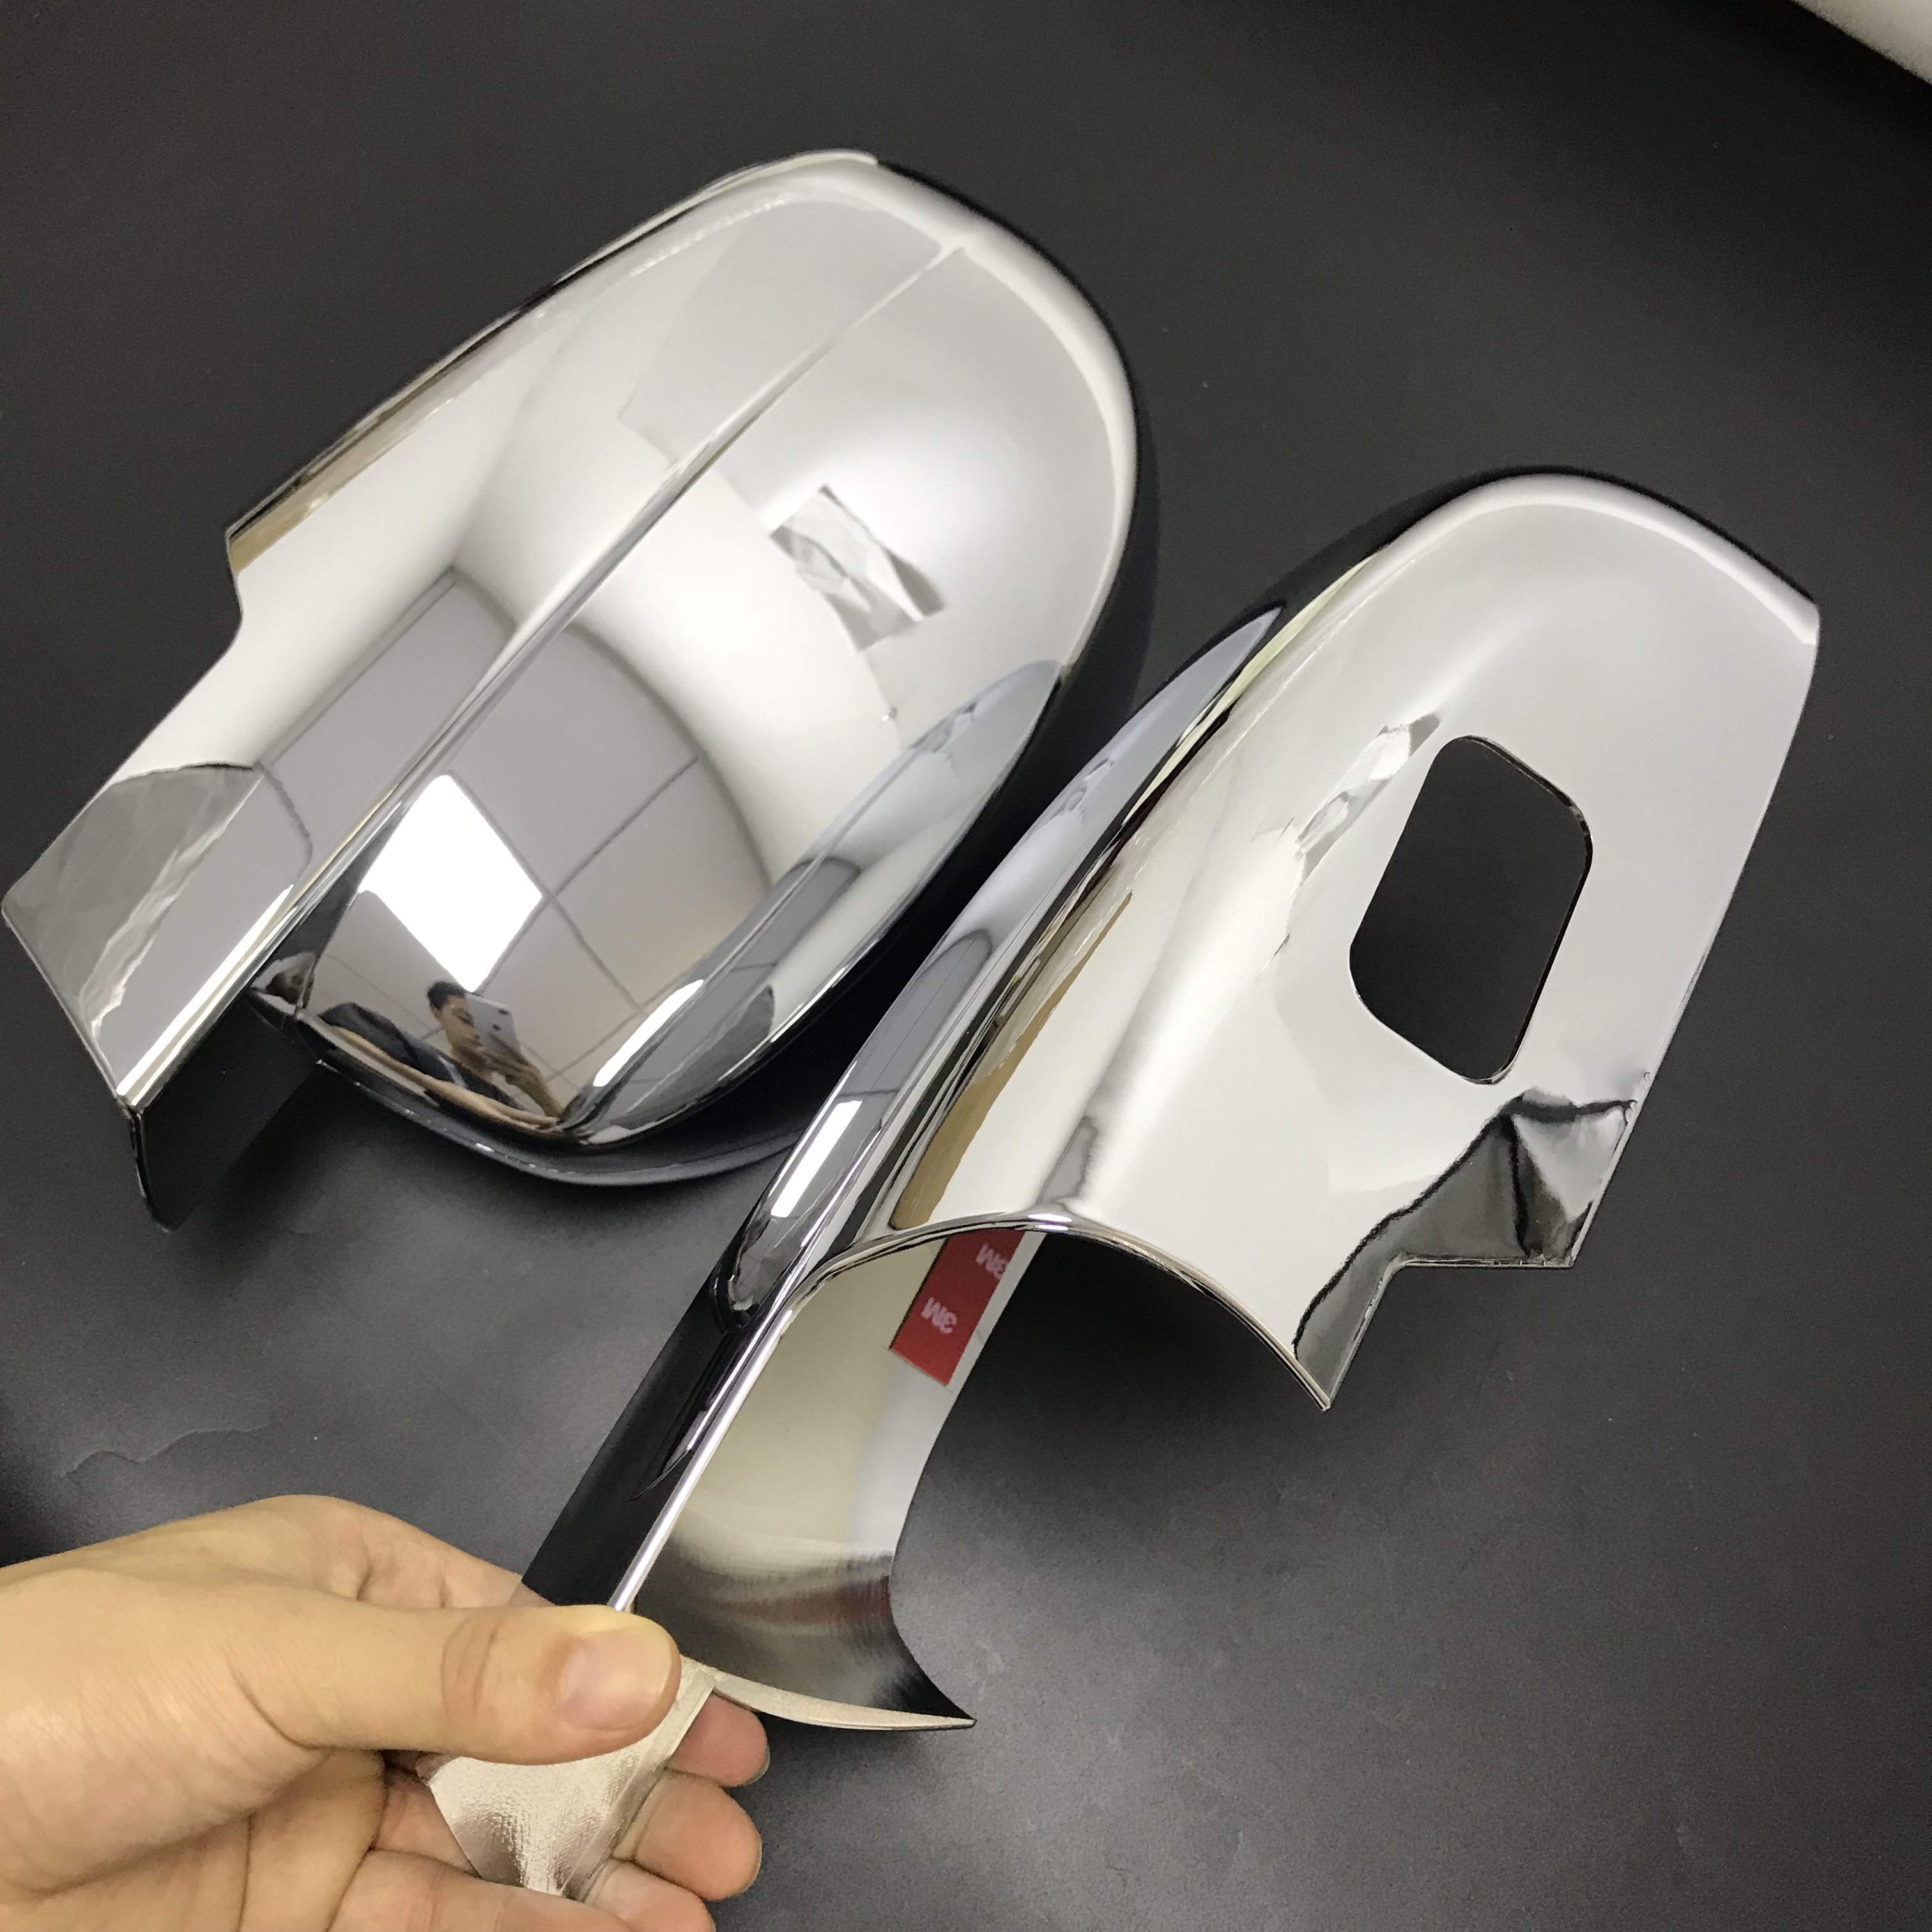 Car Styling 2x Chrome Silver Mirror Cover Tirms For Chevrolet <font><b>Tahoe</b></font> GMC <font><b>2008</b></font> 2009 2010 2011 2012 2013 2014 models image